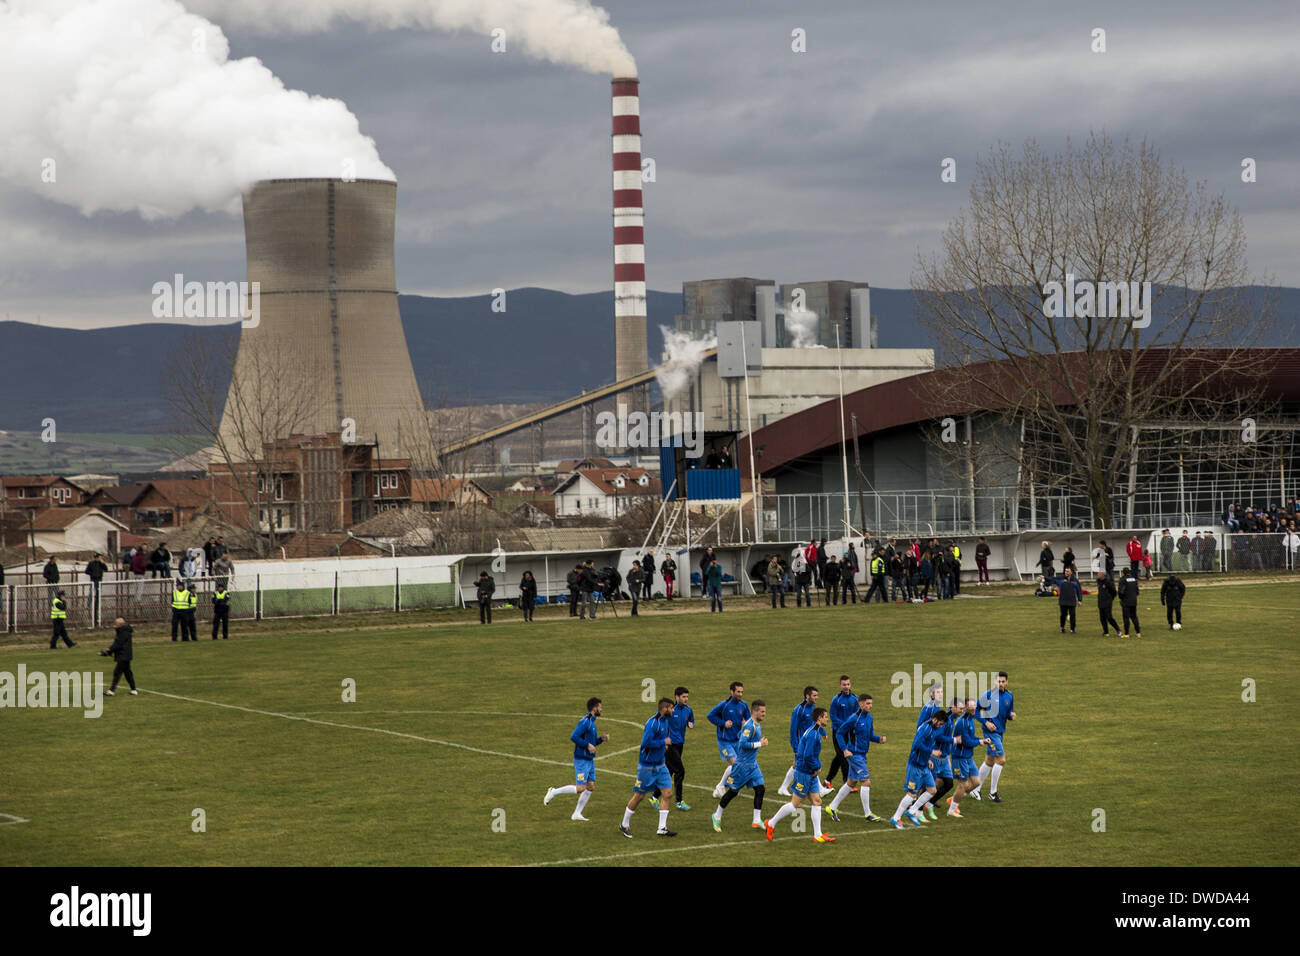 Pristina, Kosovo. 3rd Mar, 2014. Members of the Kosovo National Team practice at the KeK stadium on the Kastriot/Obilic district of Pristina, near the Kosovo Power Station, described as the worst single-point source of pollution in Europe. The will play their first FIFA sanctioned match, a friendly game against Haiti, on Wednesday March 5. PHOTO BY JODI HILTON/NURPHOTO © Jodi Hilton/NurPhoto/ZUMAPRESS.com/Alamy Live News - Stock Image